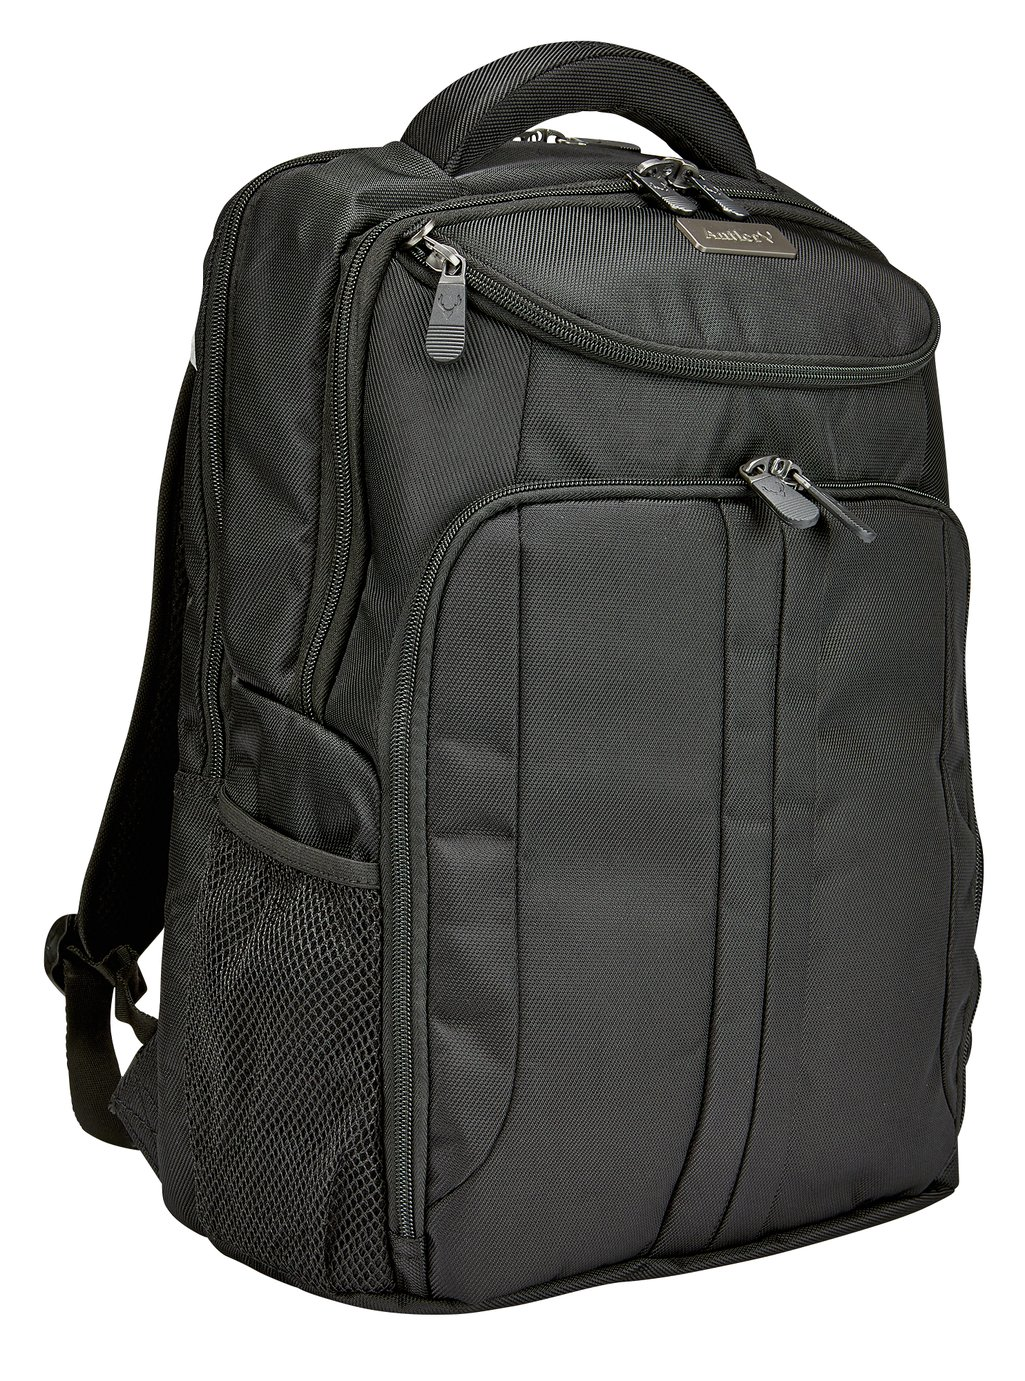 Image of Antler Business 200 Backpack - Small